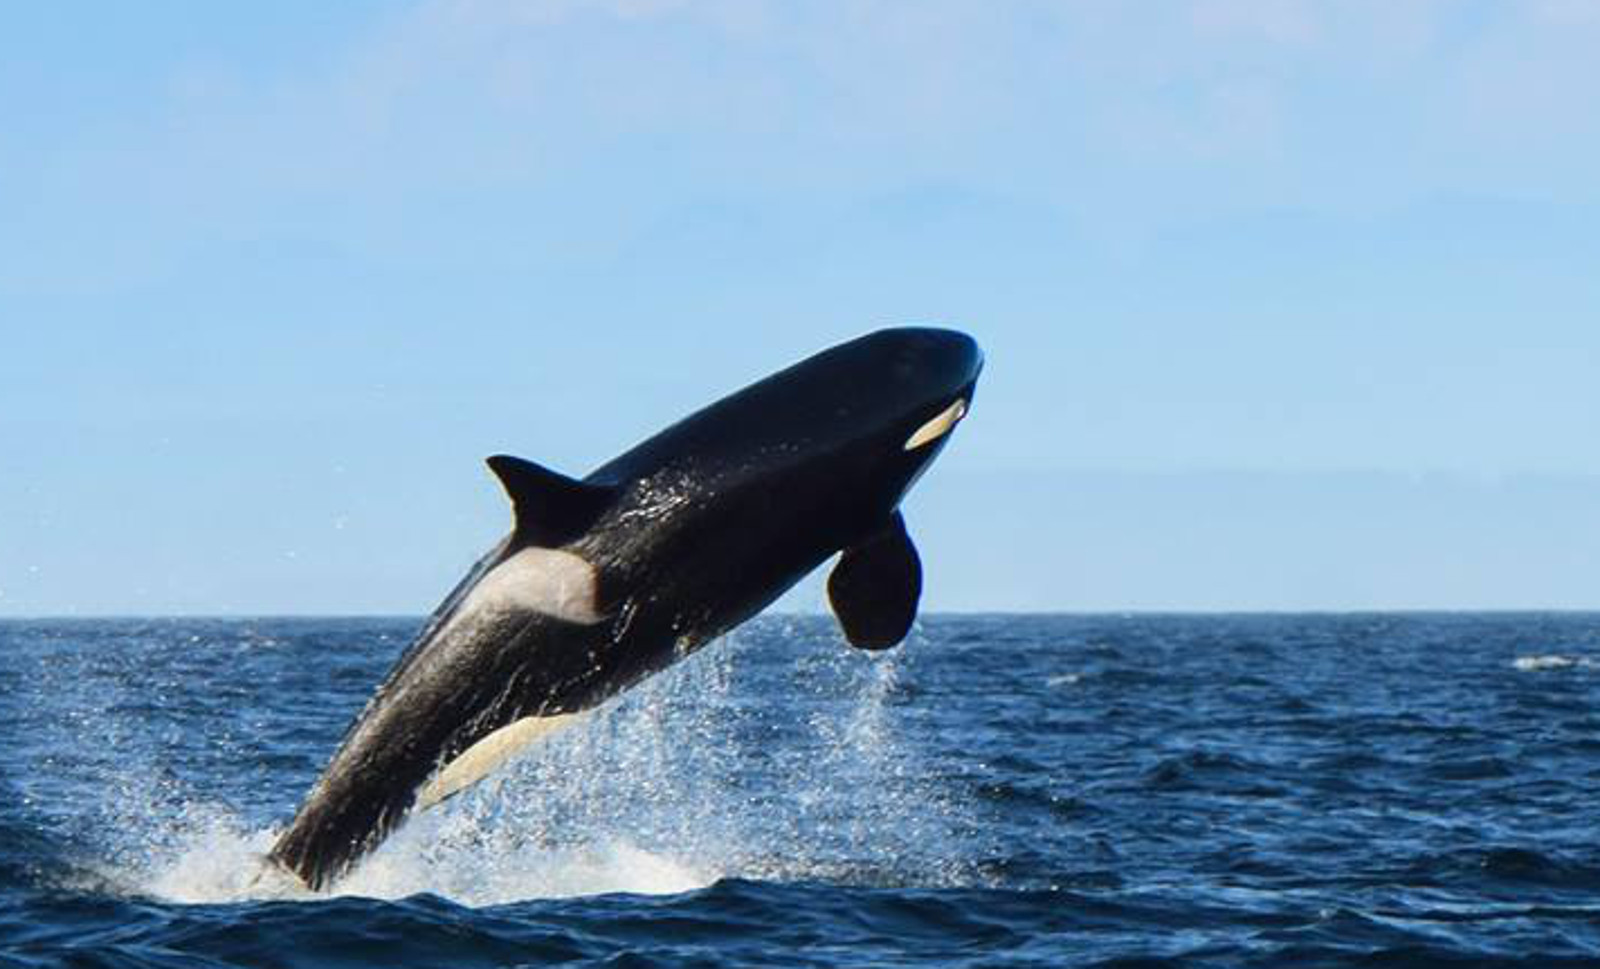 105 Year Old Orca is Still Jumping for Joy in the Wild – Proof a Tank is Not the Key to a Long Life